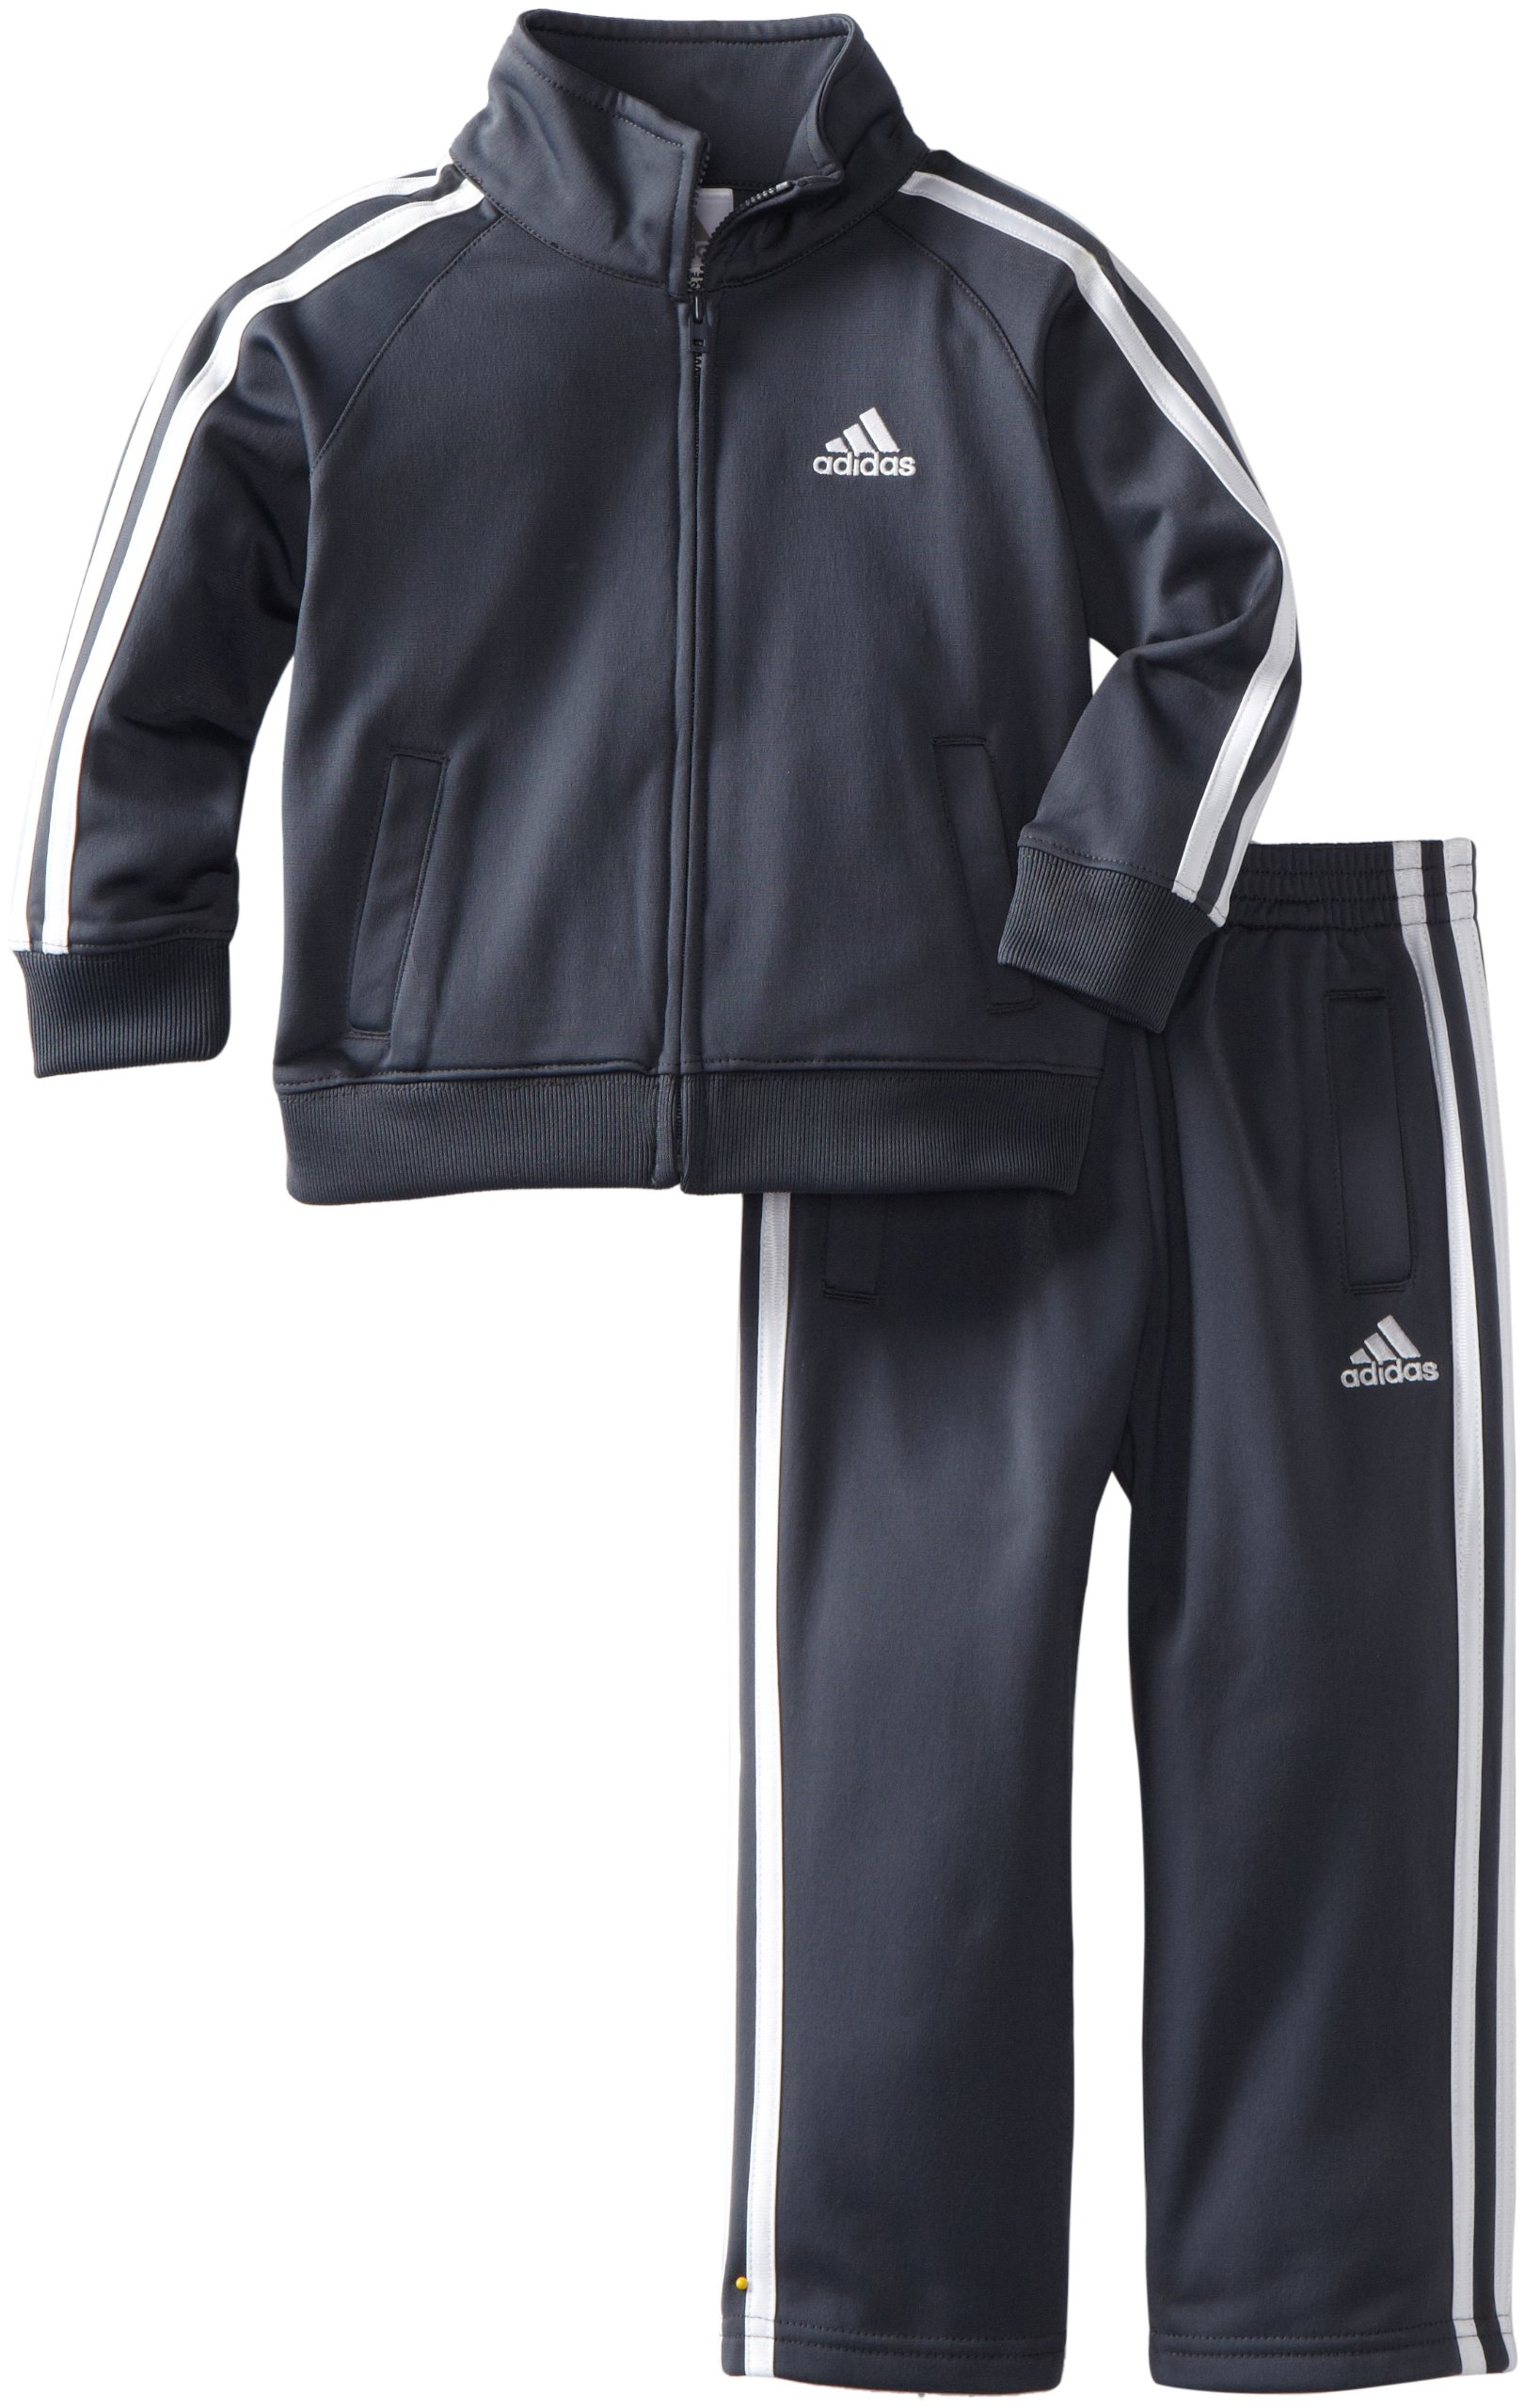 adidas Toddler Boys' Iconic Tricot Jacket and Pant Set, Grey, 2T by adidas